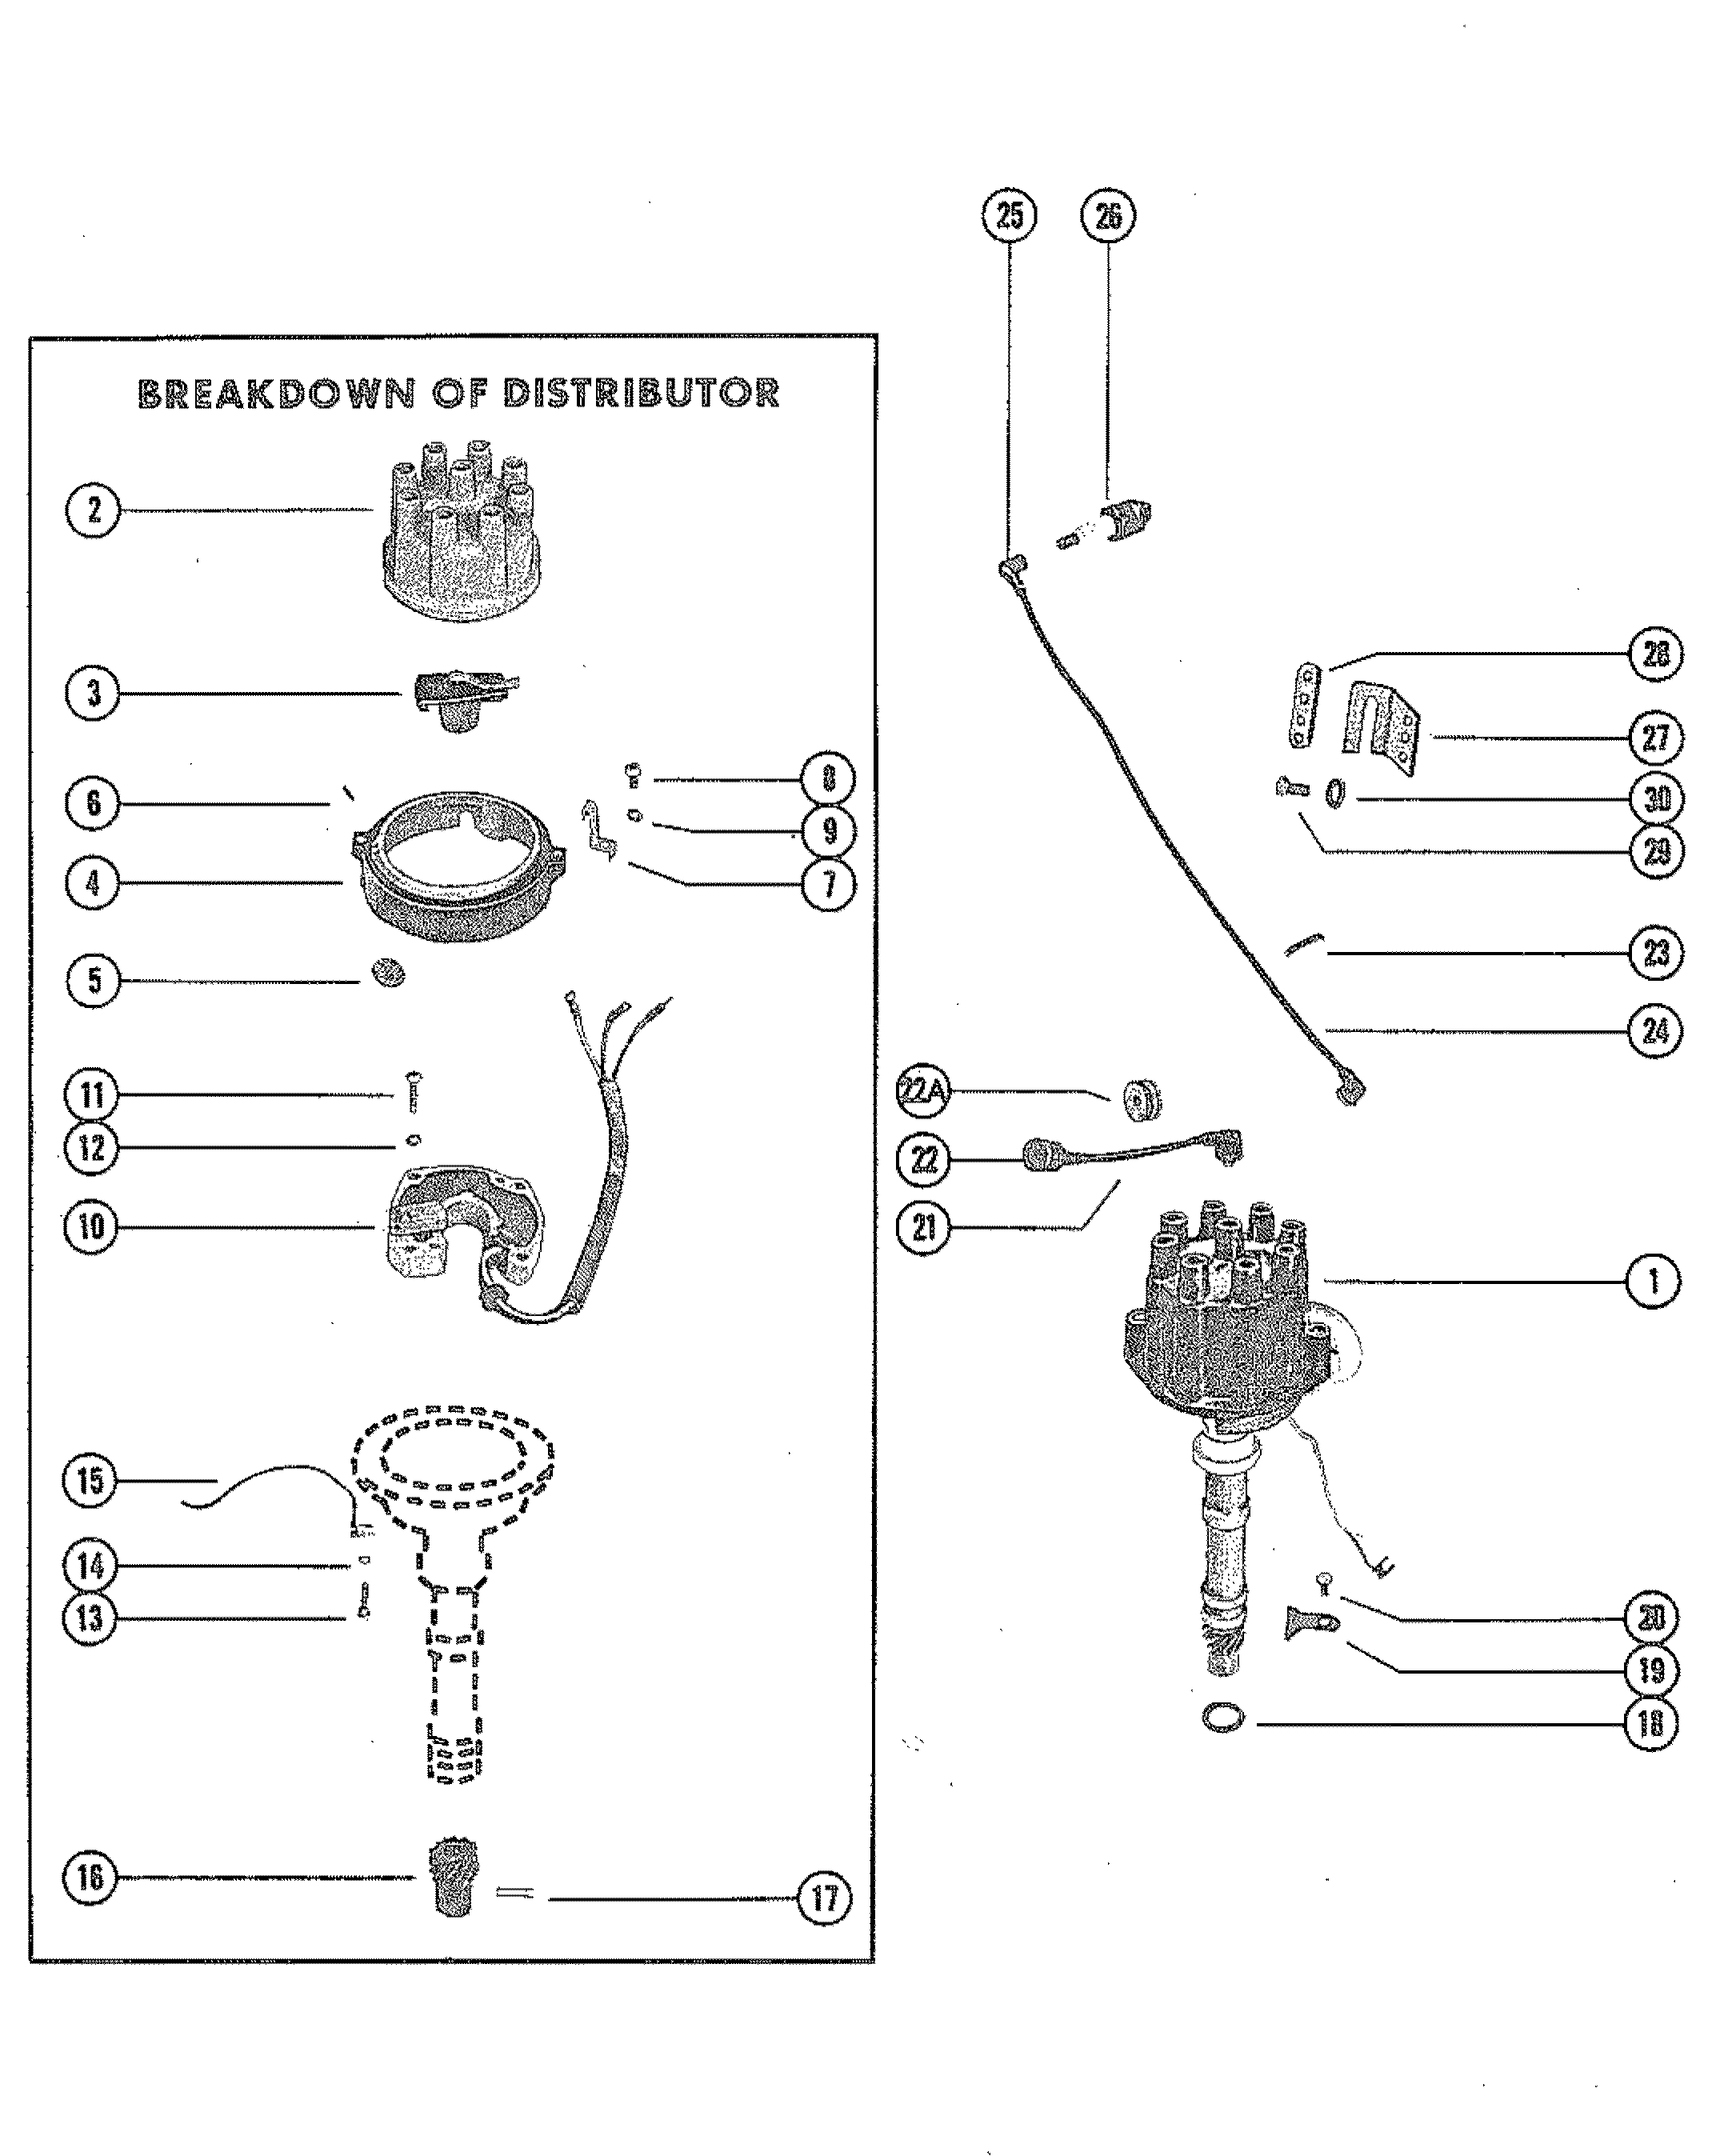 dodge caravan remote starter a diagram for the wiring mercruiser 5.7 ignition switch wiring diagram mercury ignition switch wiring diagram